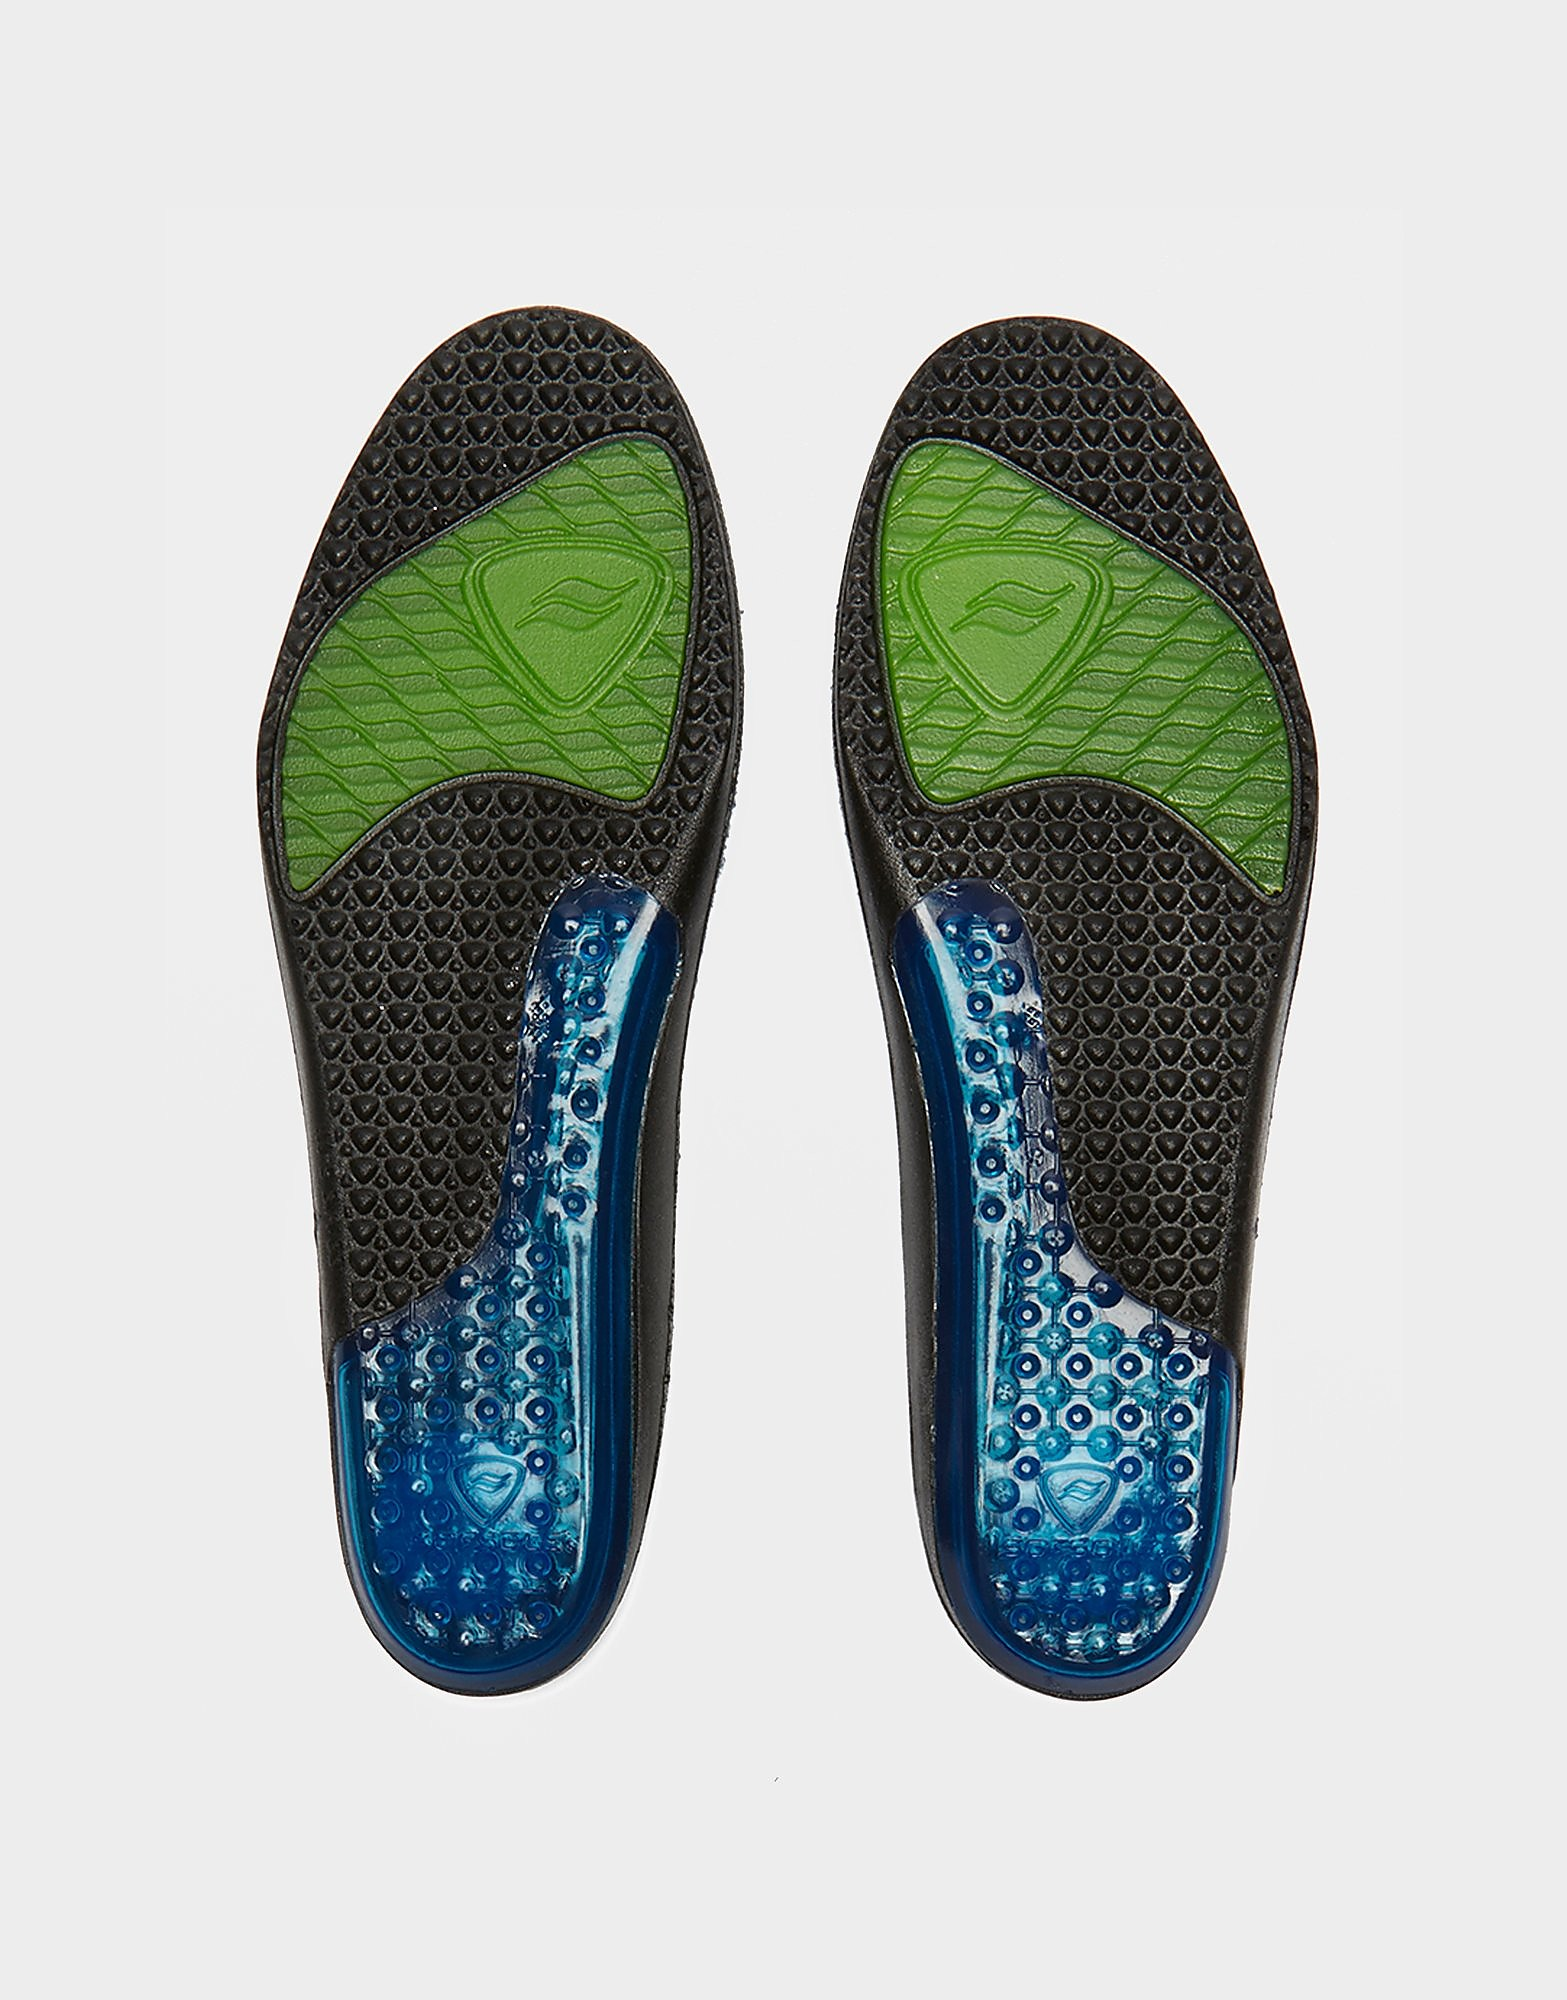 Sof Sole Airr Insole para mujeres